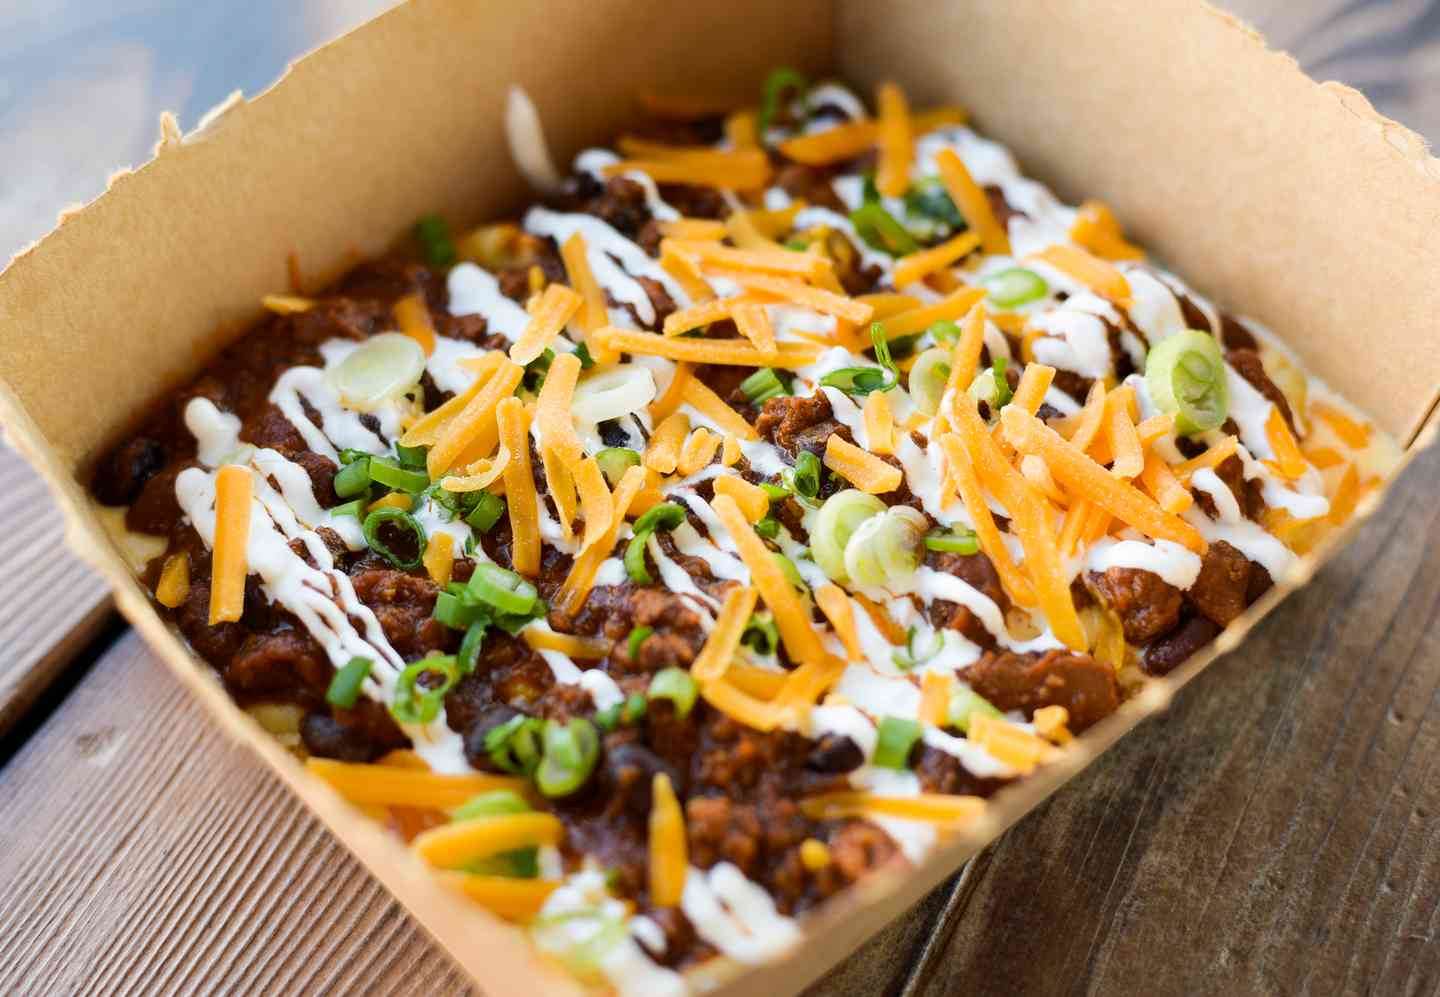 Chili Cheese Bowl